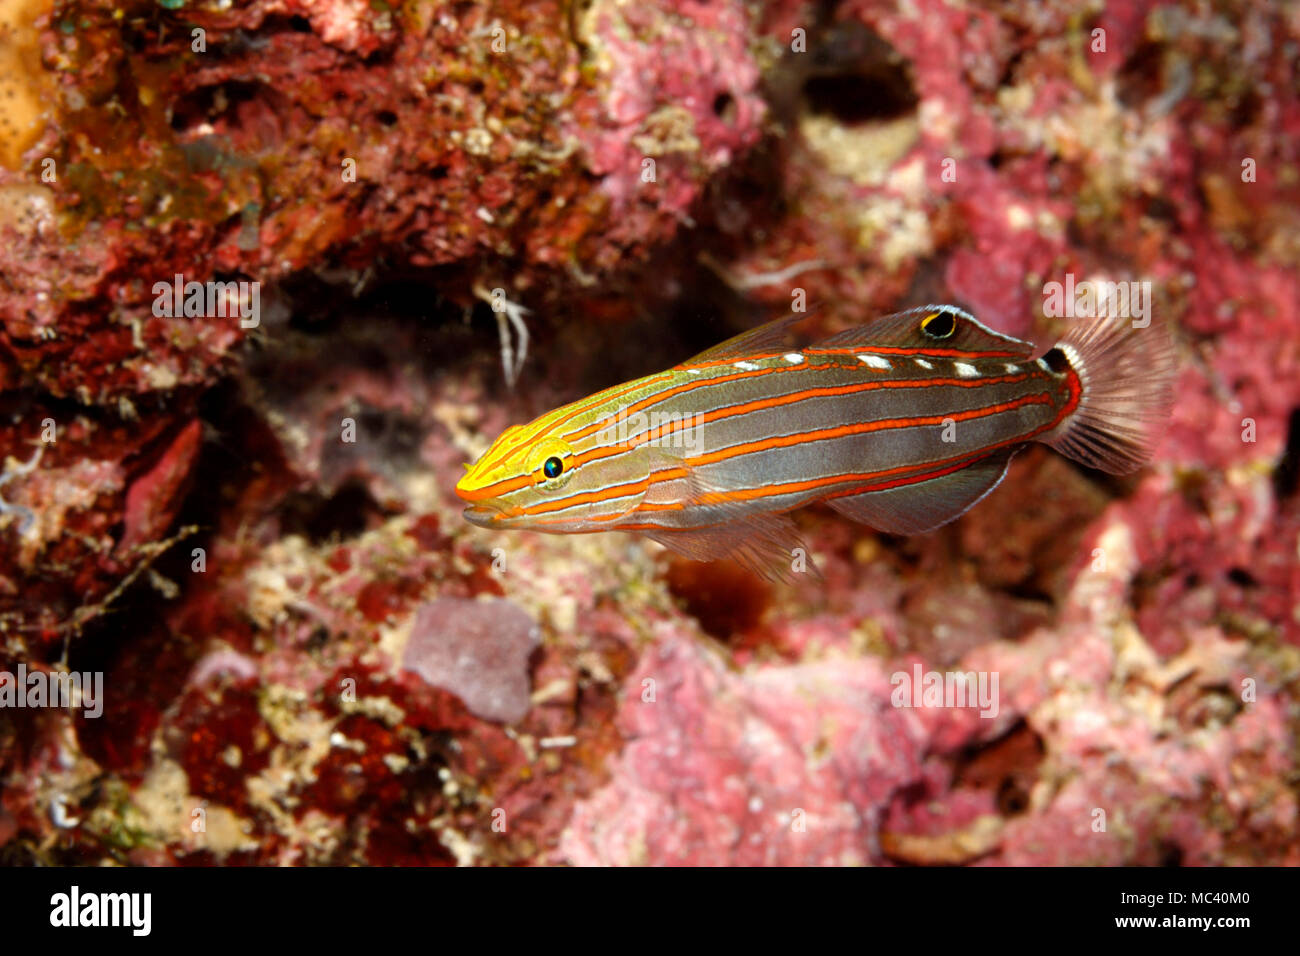 old-glory-goby-koumansetta-rainfordi-also-known-as-court-jester-goby-and-rainfords-goby-MC40M0.jpg